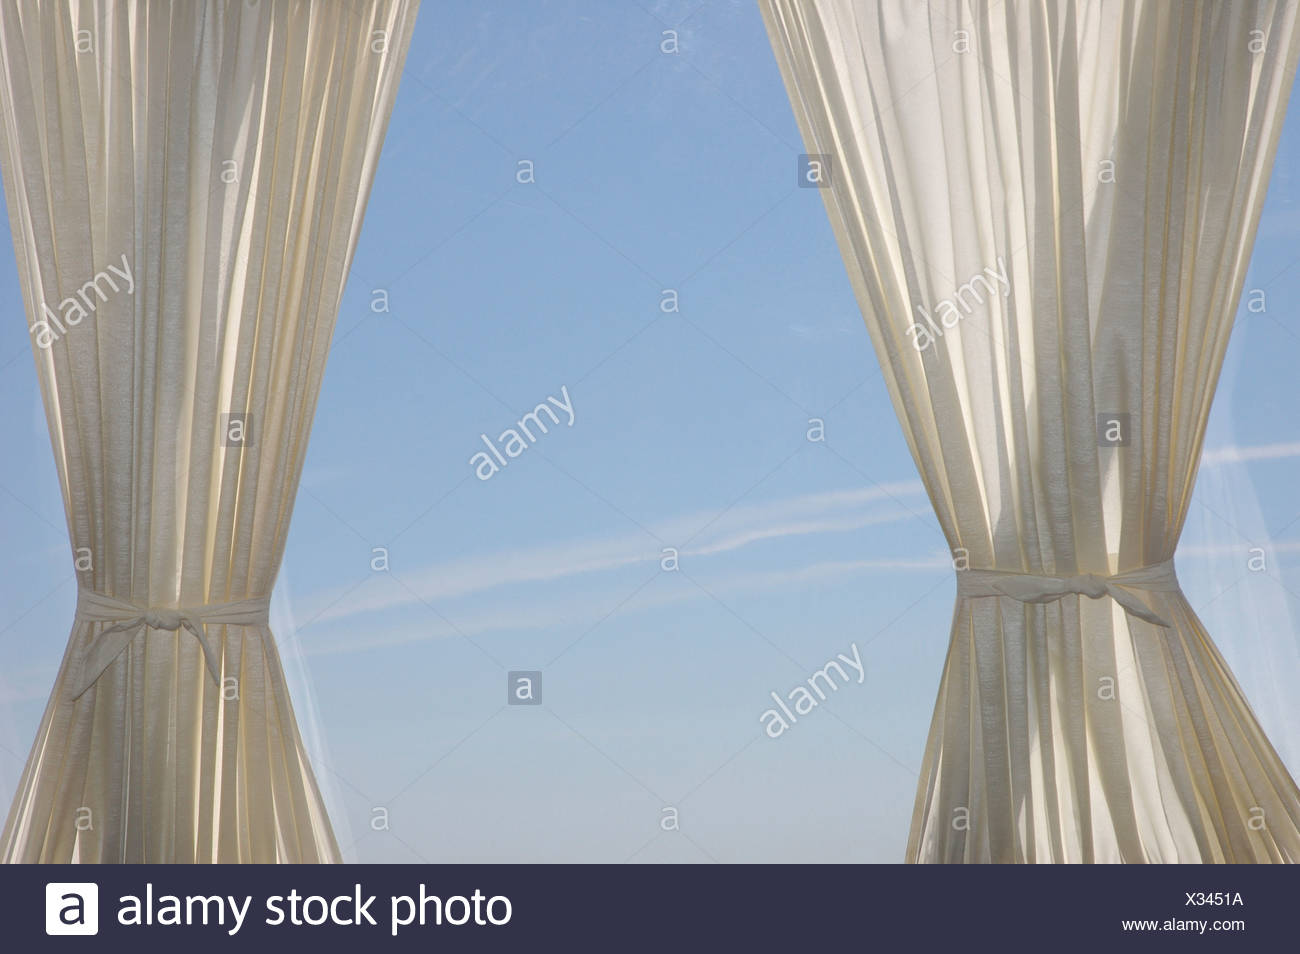 Two Elegant White Curtains Are Seen Against A Glass Window Stock Photo Alamy